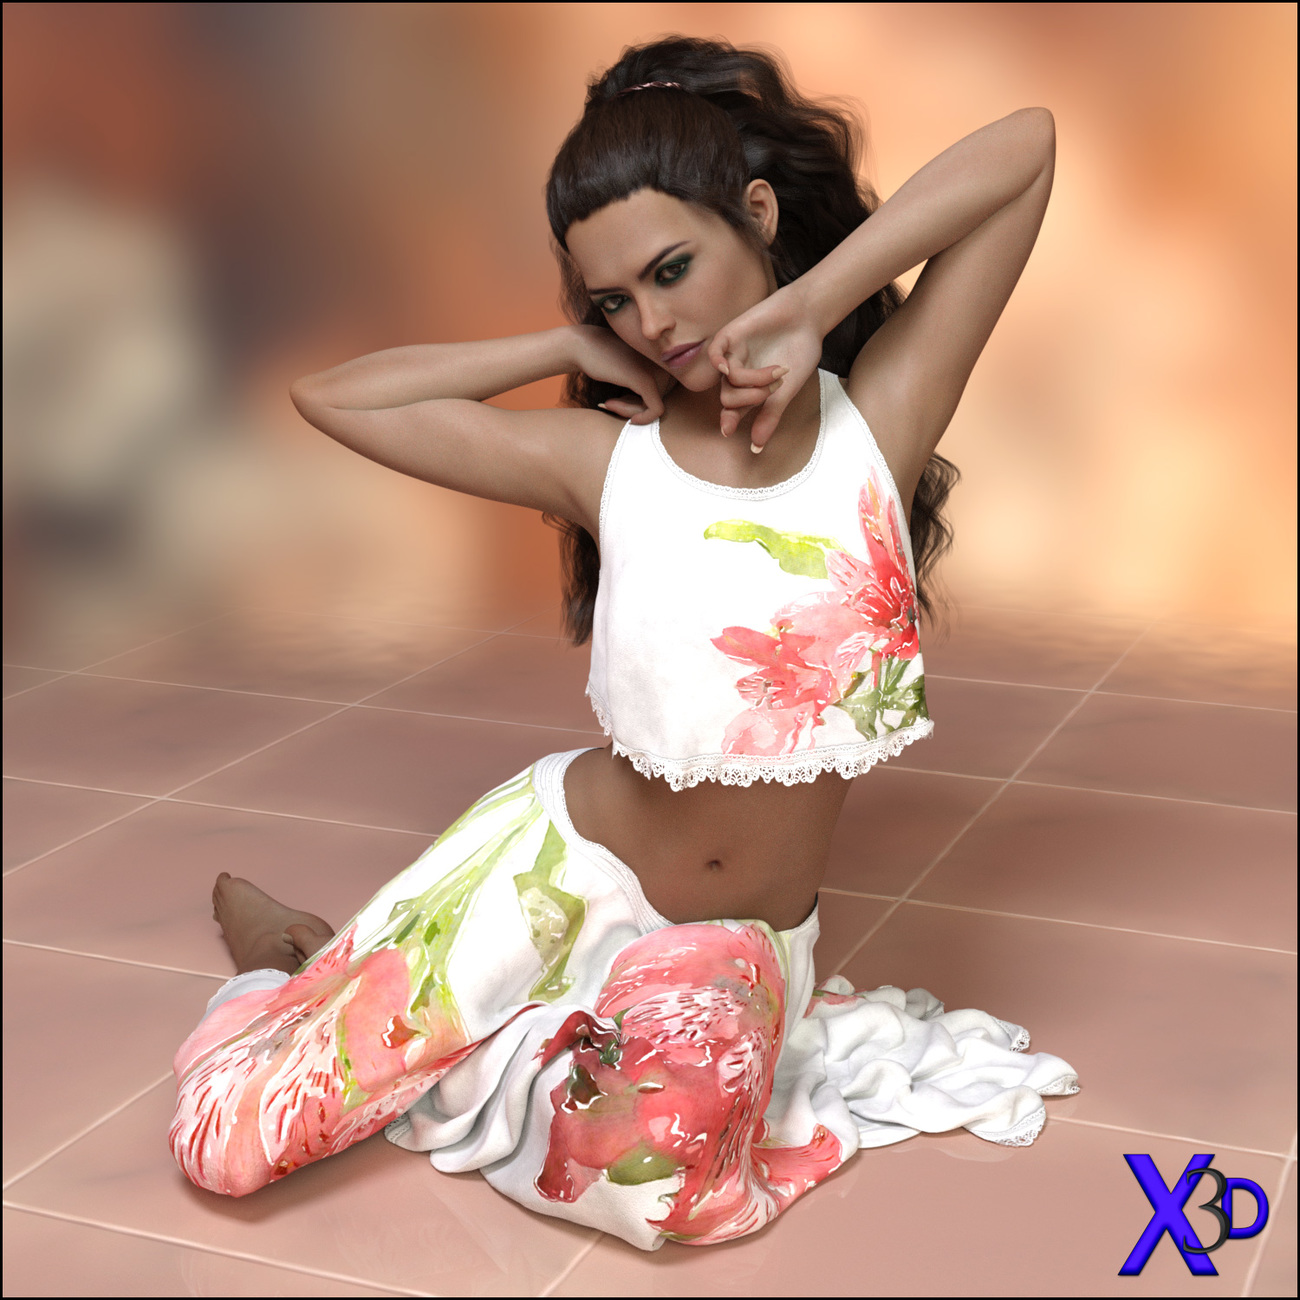 Breezing - Poses for G3F-V7-G8F